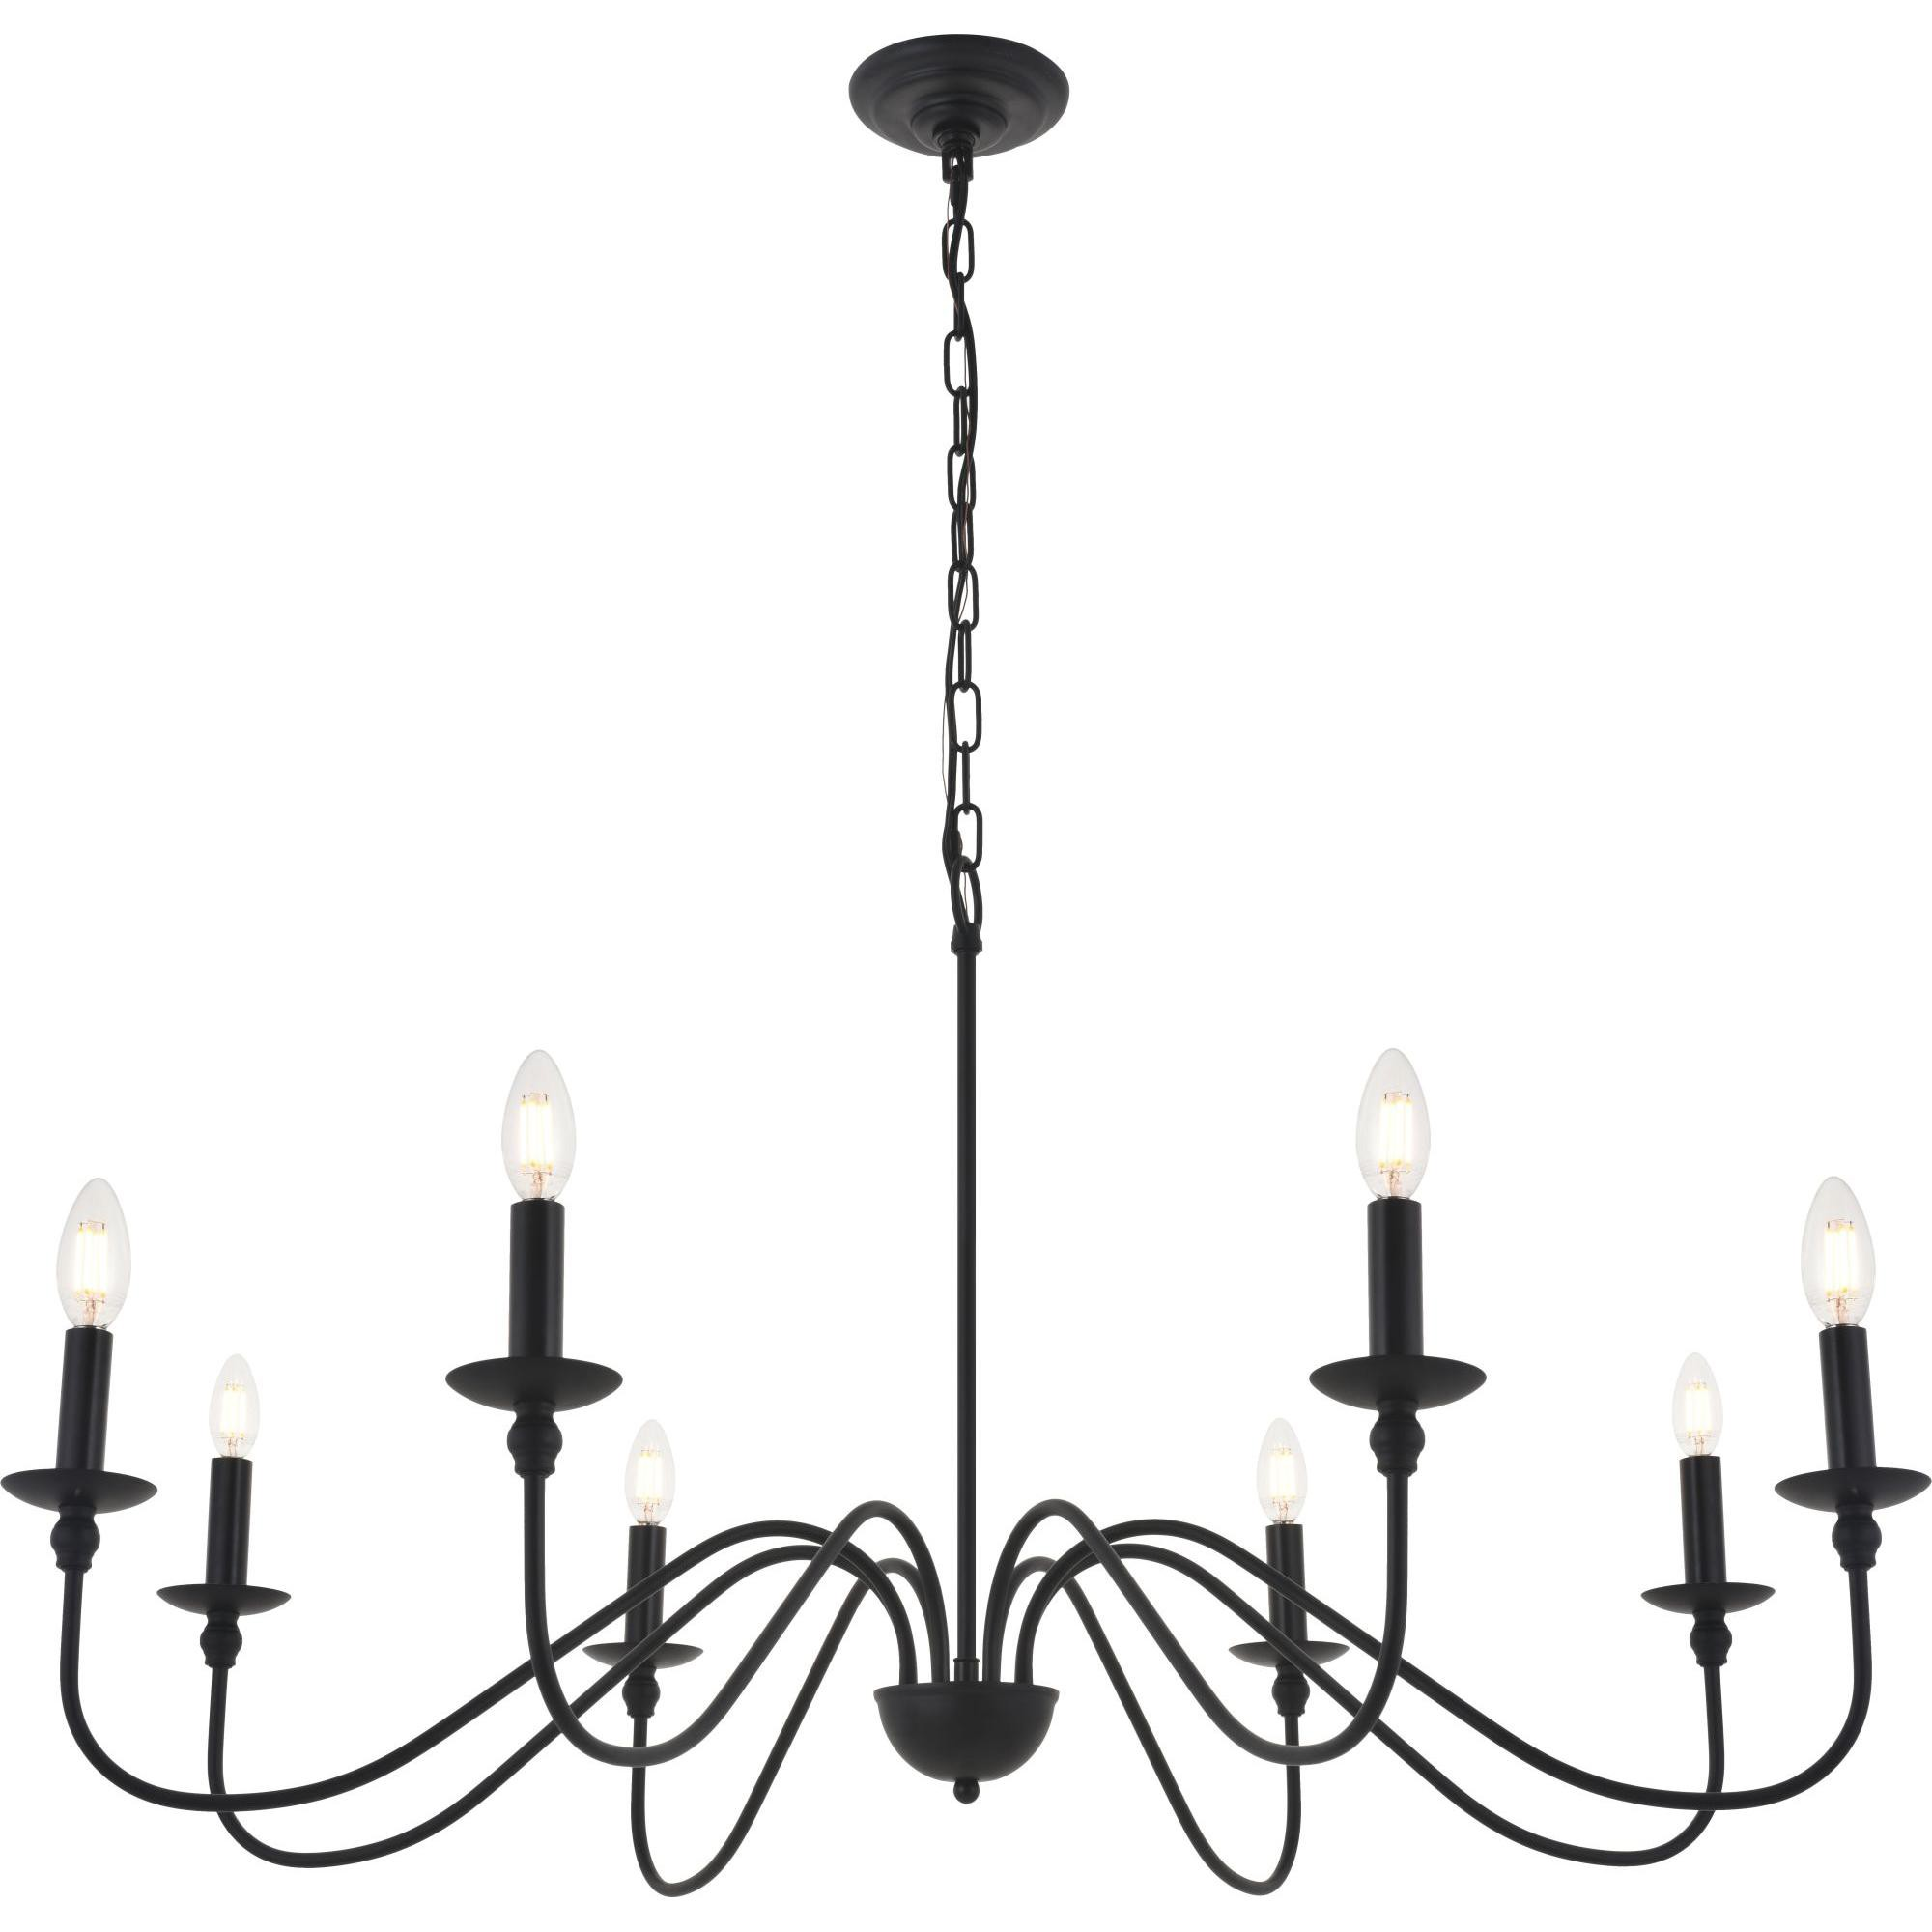 Elegant Lighting Ld5006d42 Rohan 8 Light 42 Wide Taper Candle Chandelier Matte Black Candle Chandelier Black Chandelier Dining Room Black Candle Chandelier